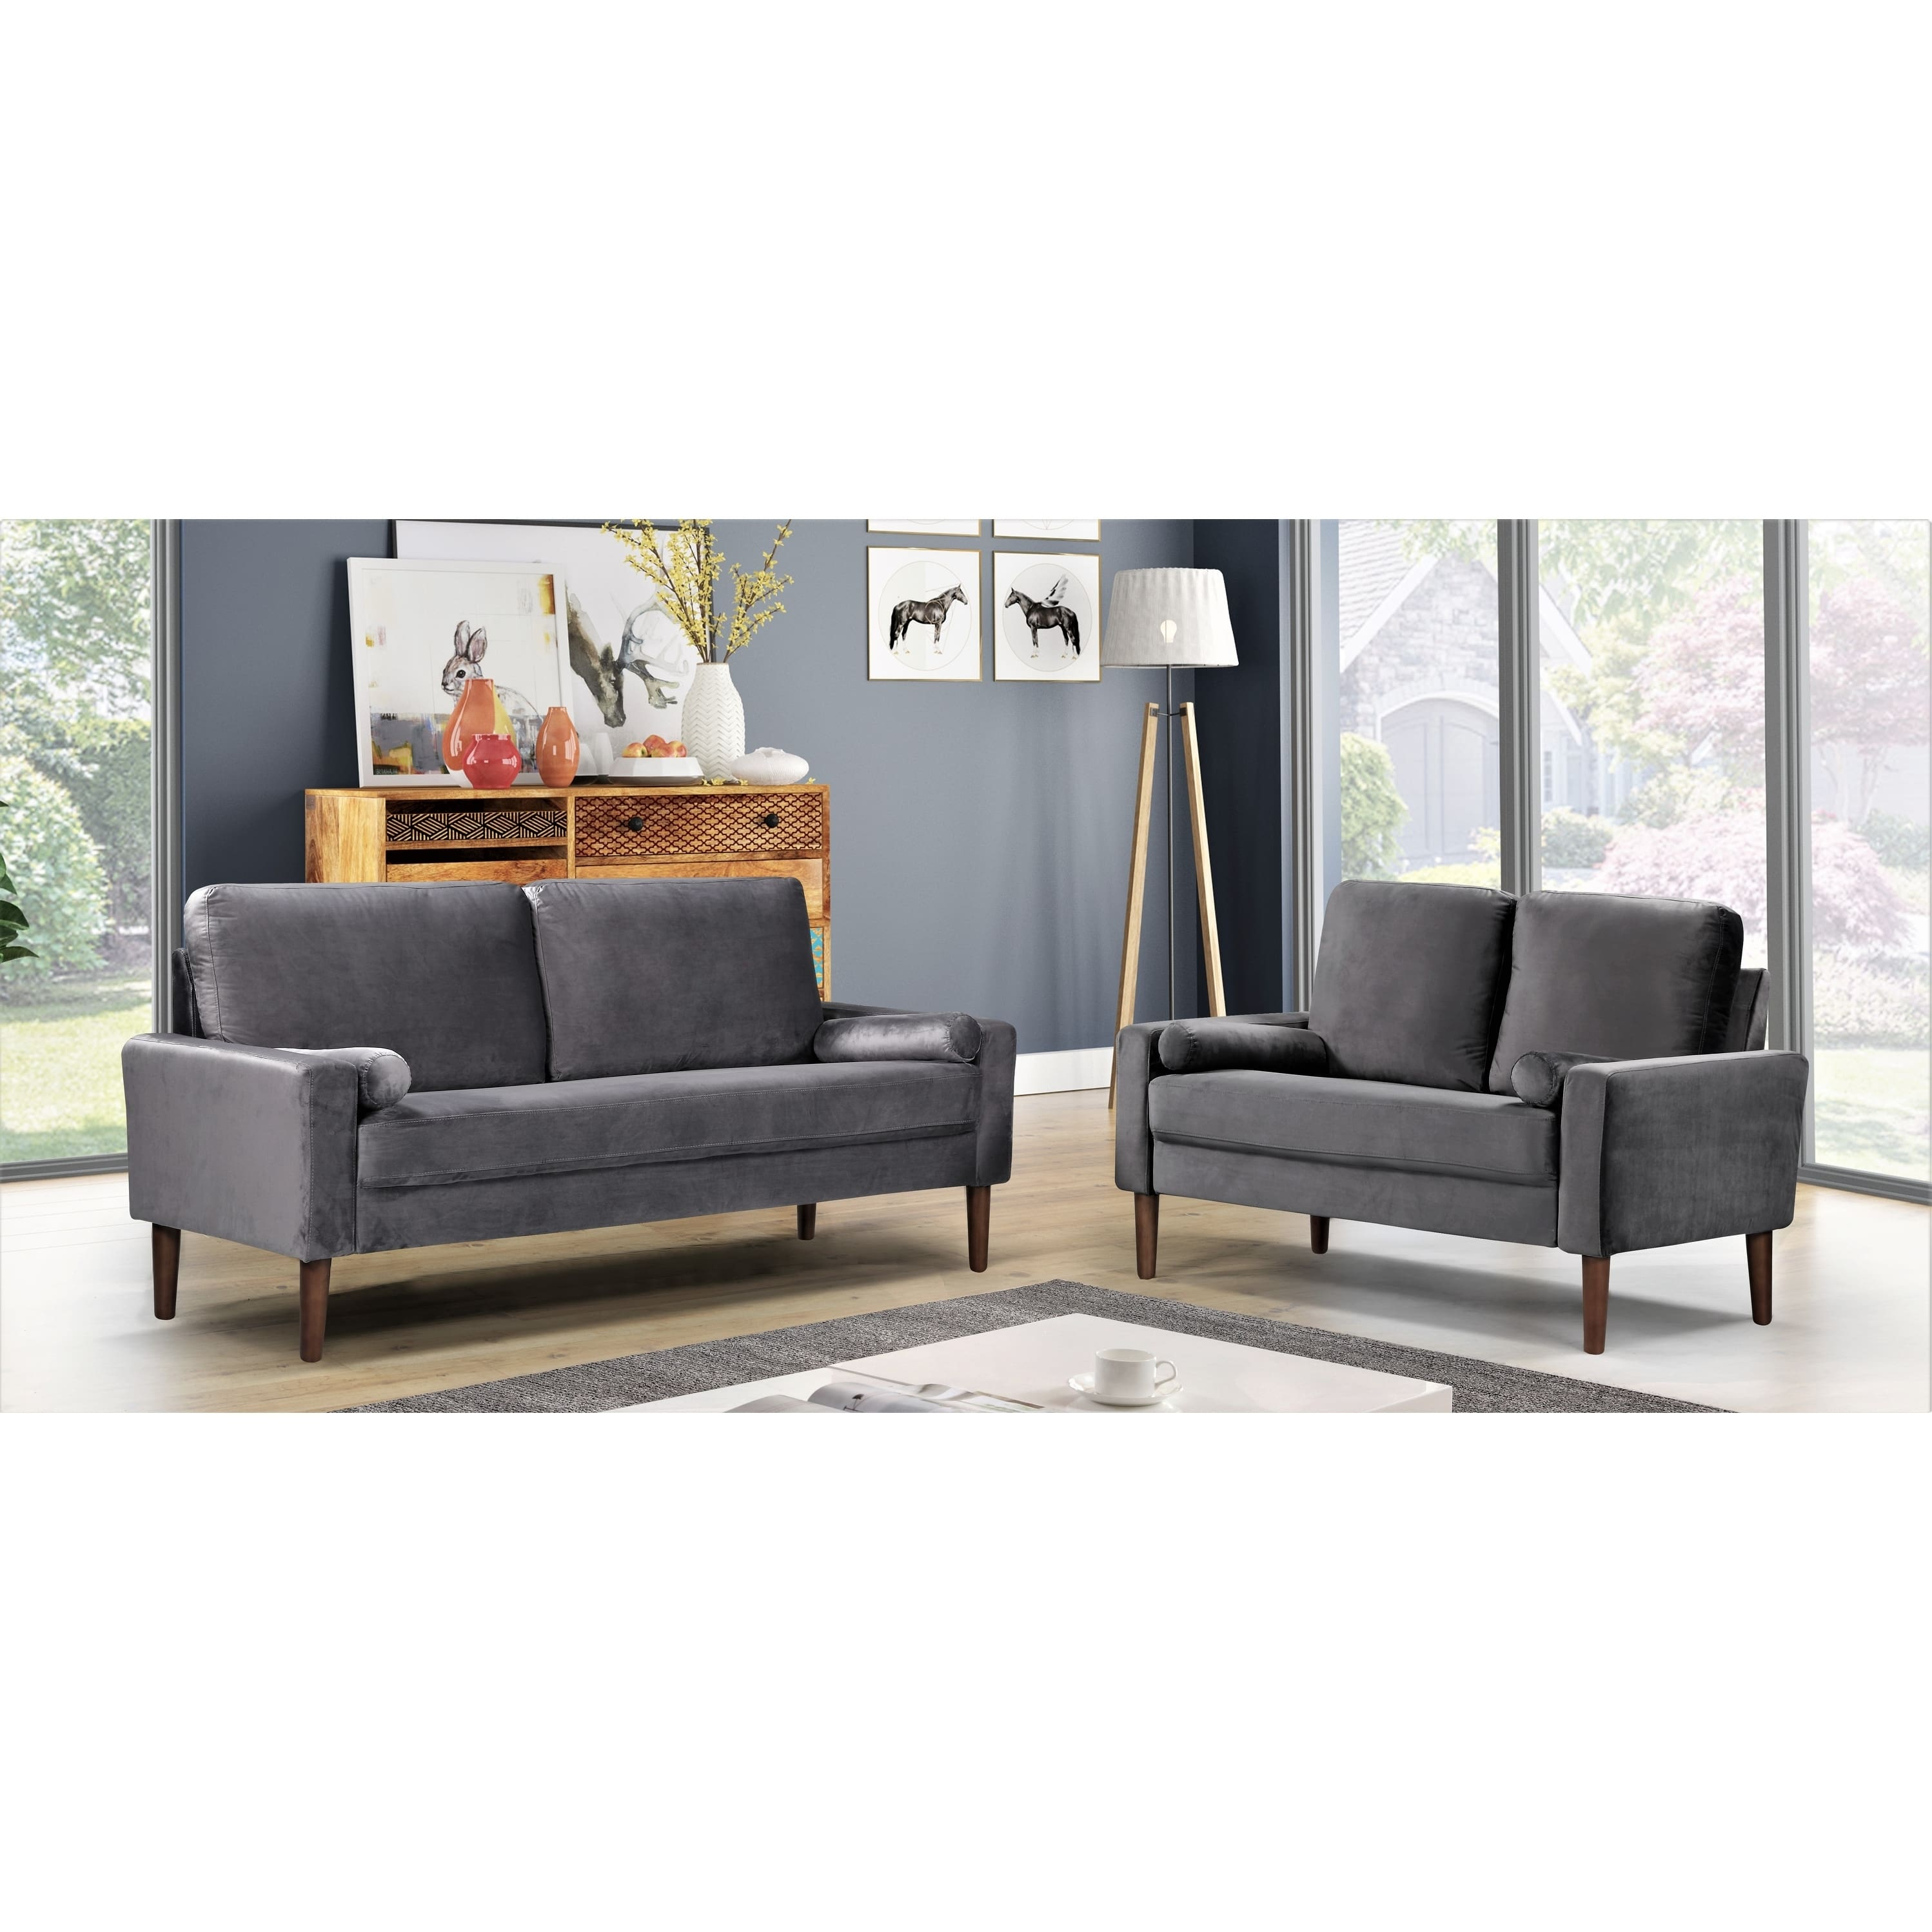 Best Furniture Deals Online: Buy Sofas & Couches Online At Overstock